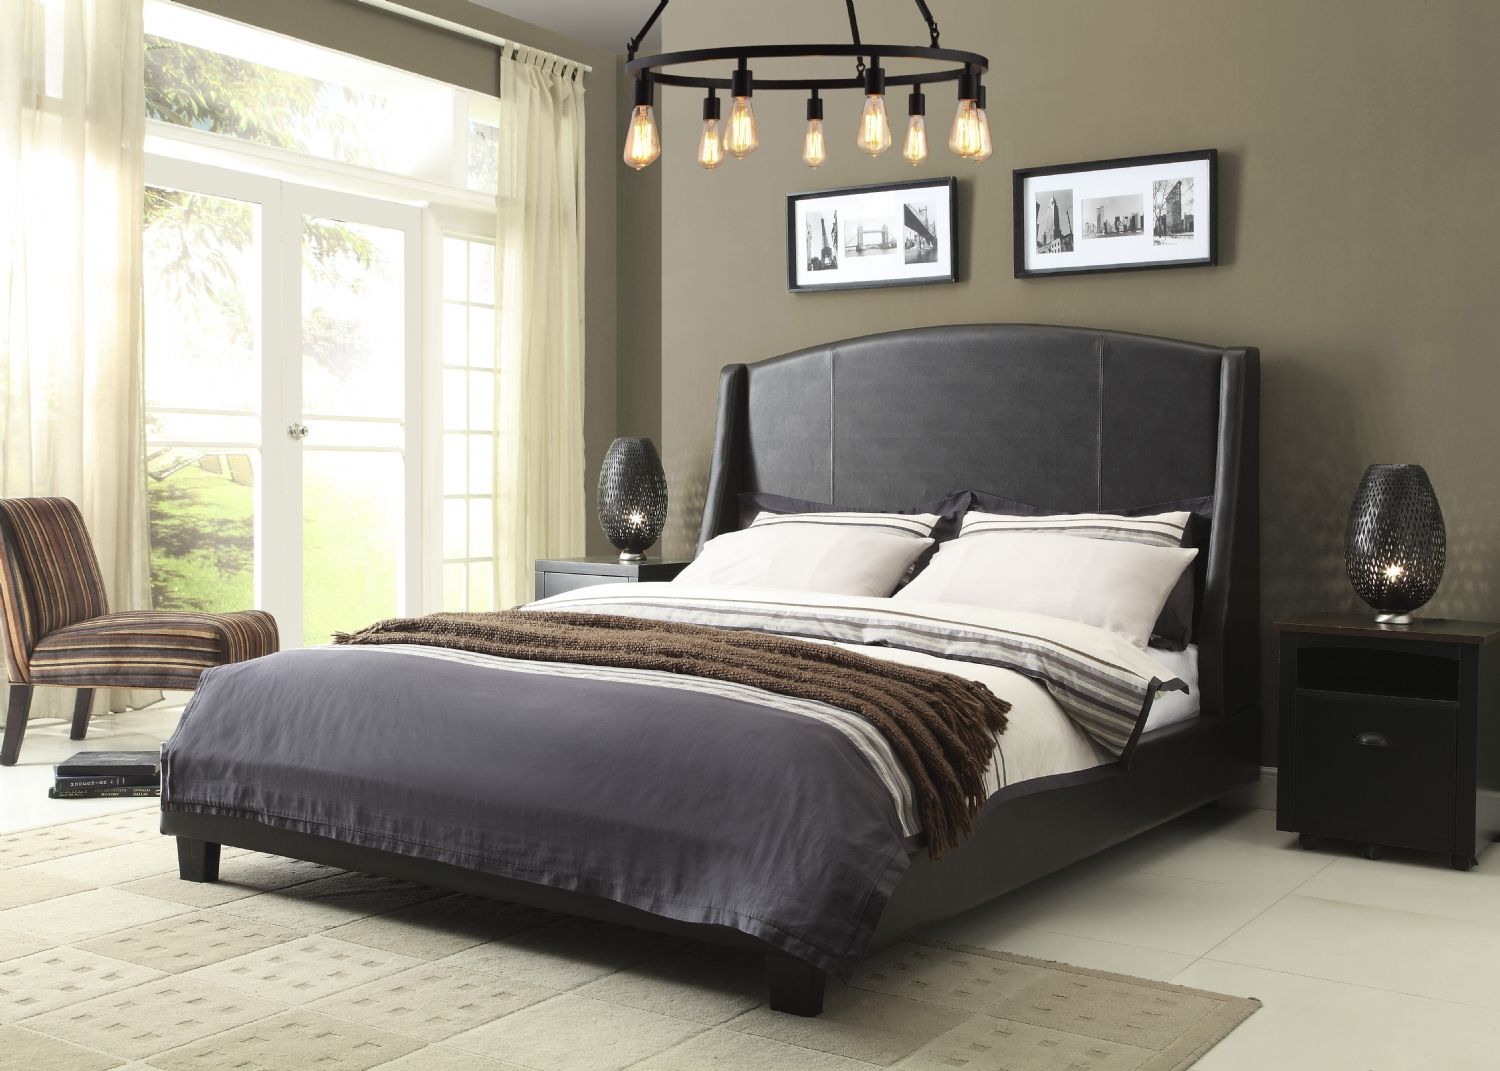 Check out the deal on The Beverly at Luxurious Beds and Linens, Ltd.